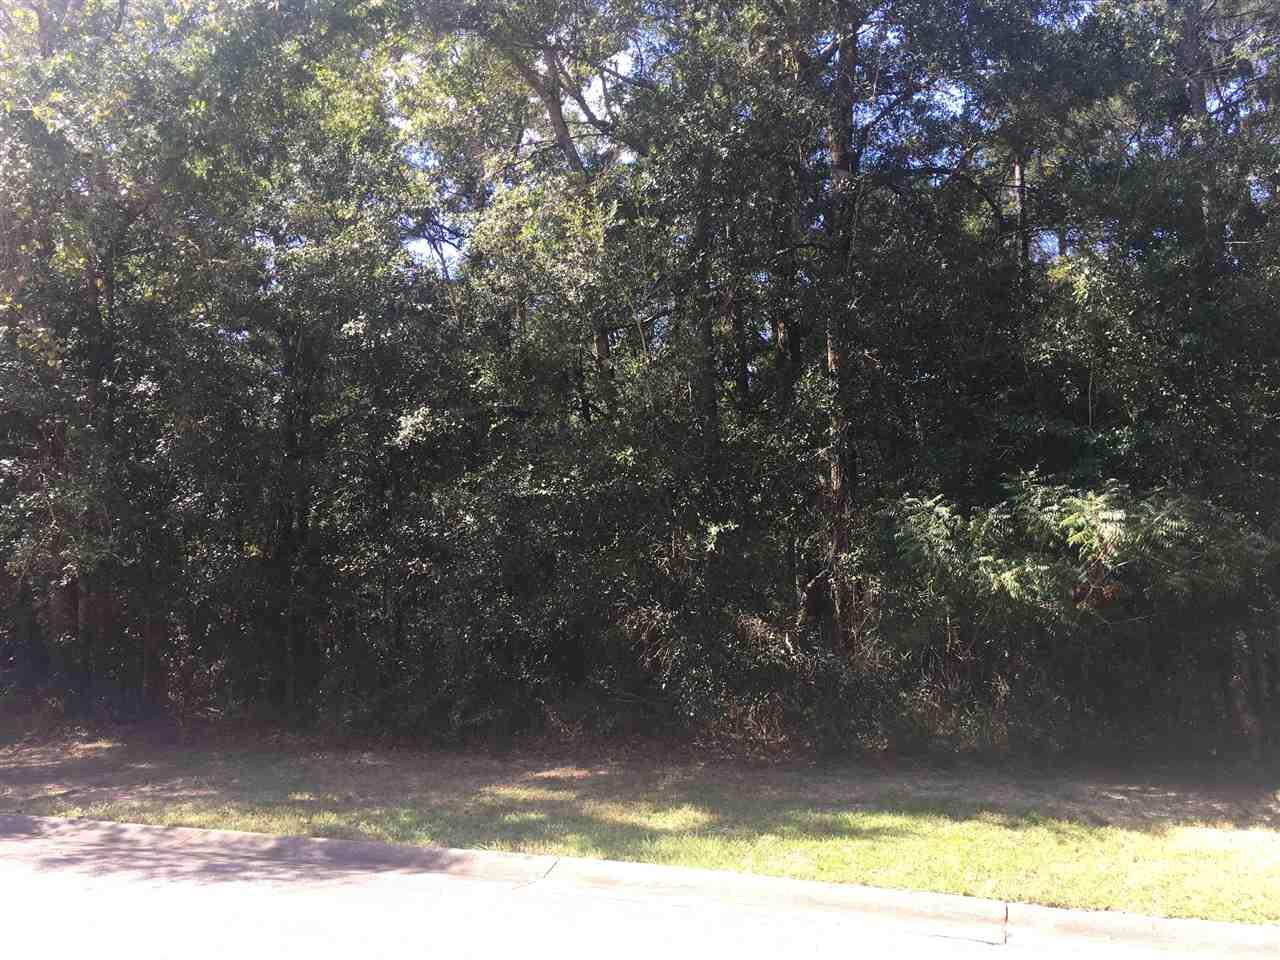 Ideal building lot located in Plantation Pines Subdivision in beautiful Fairhope Alabama. The neighborhood utilities include gas, water, and sewer that are underground with, sidewalks, and street lights. This lot would make a wonderful home site and is in close proximity to all of what Fairhope has to offer. Minimum square footage building area is 2400 sq ft.